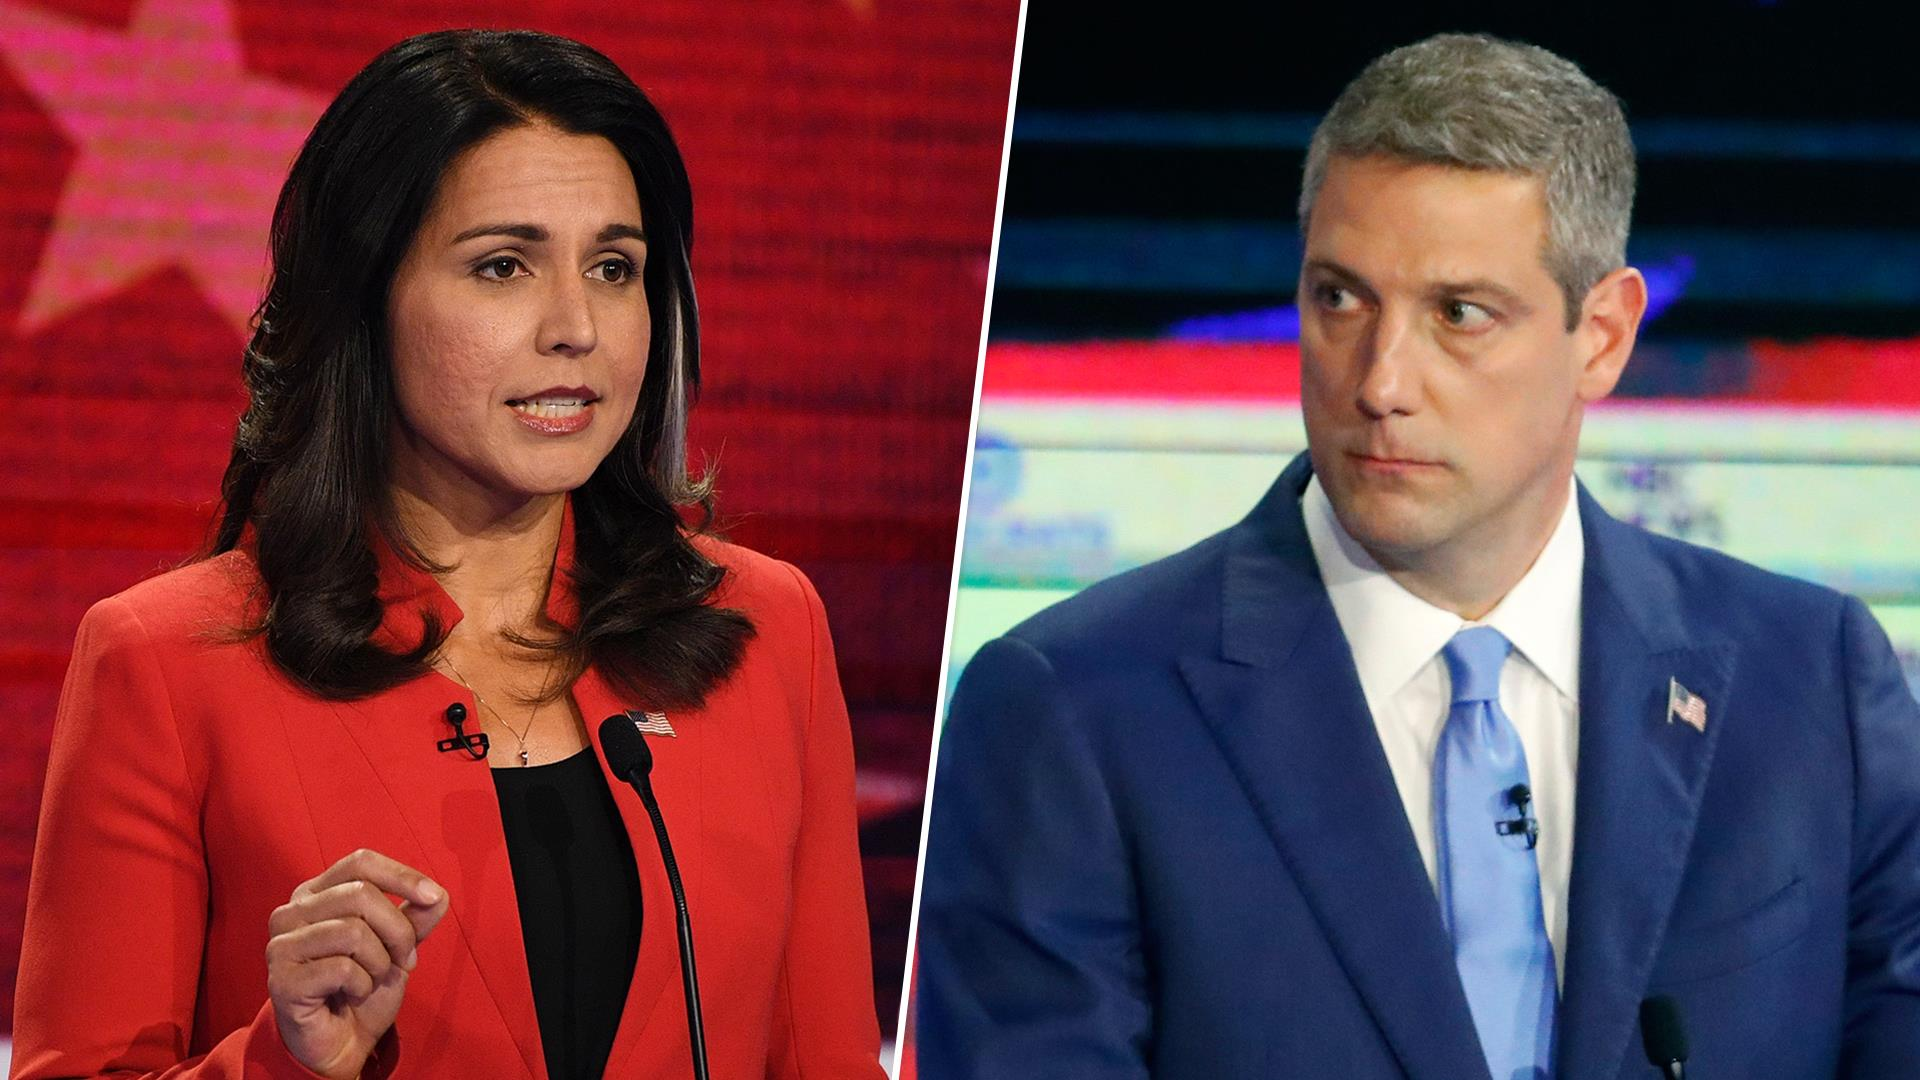 Tim Ryan and Tulsi Gabbard spar on Afghanistan, foreign policy